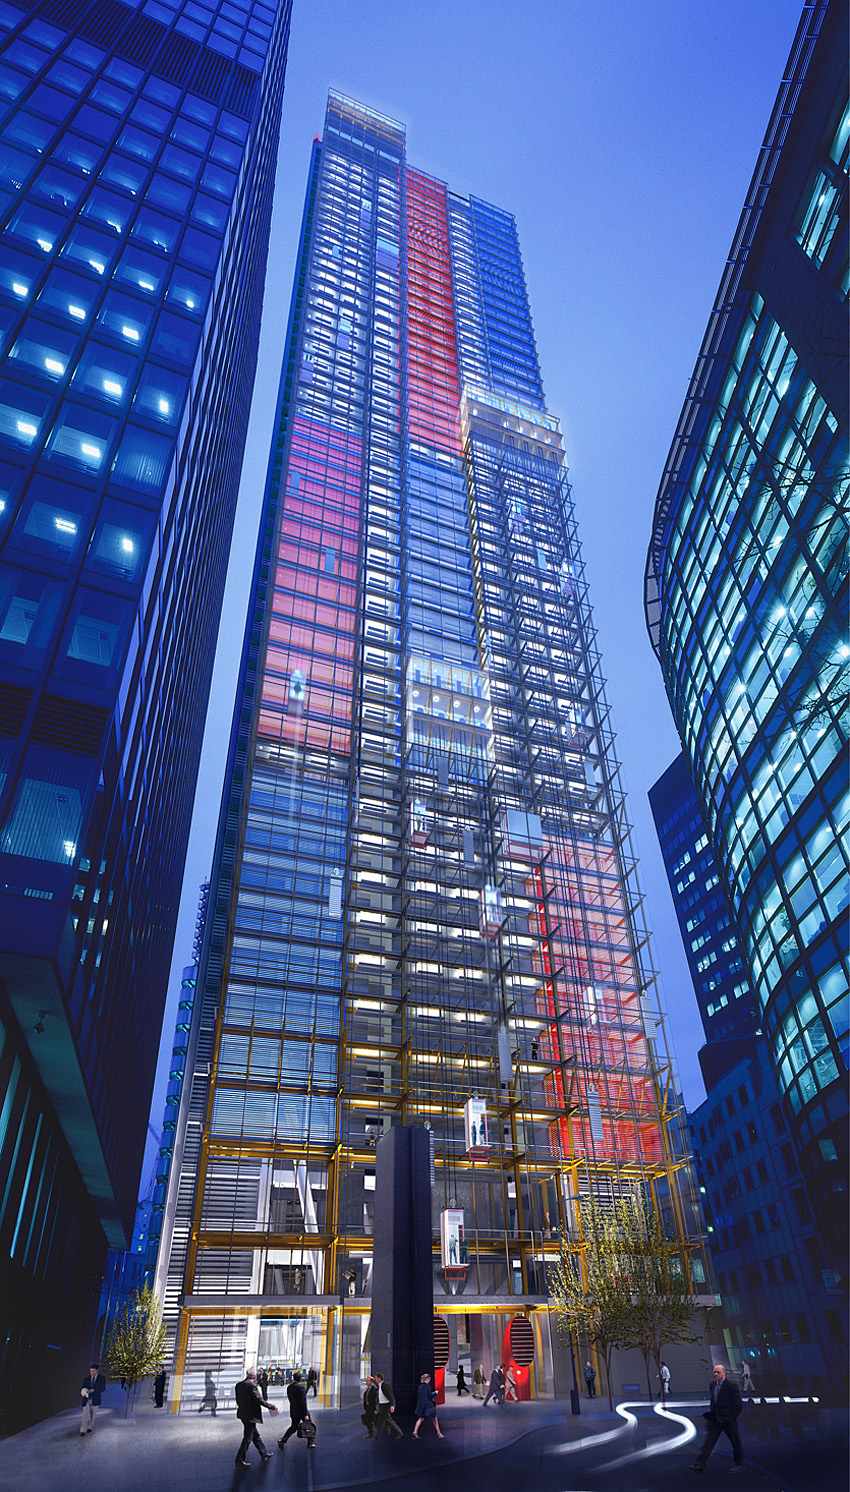 Night-time view from Undershaft